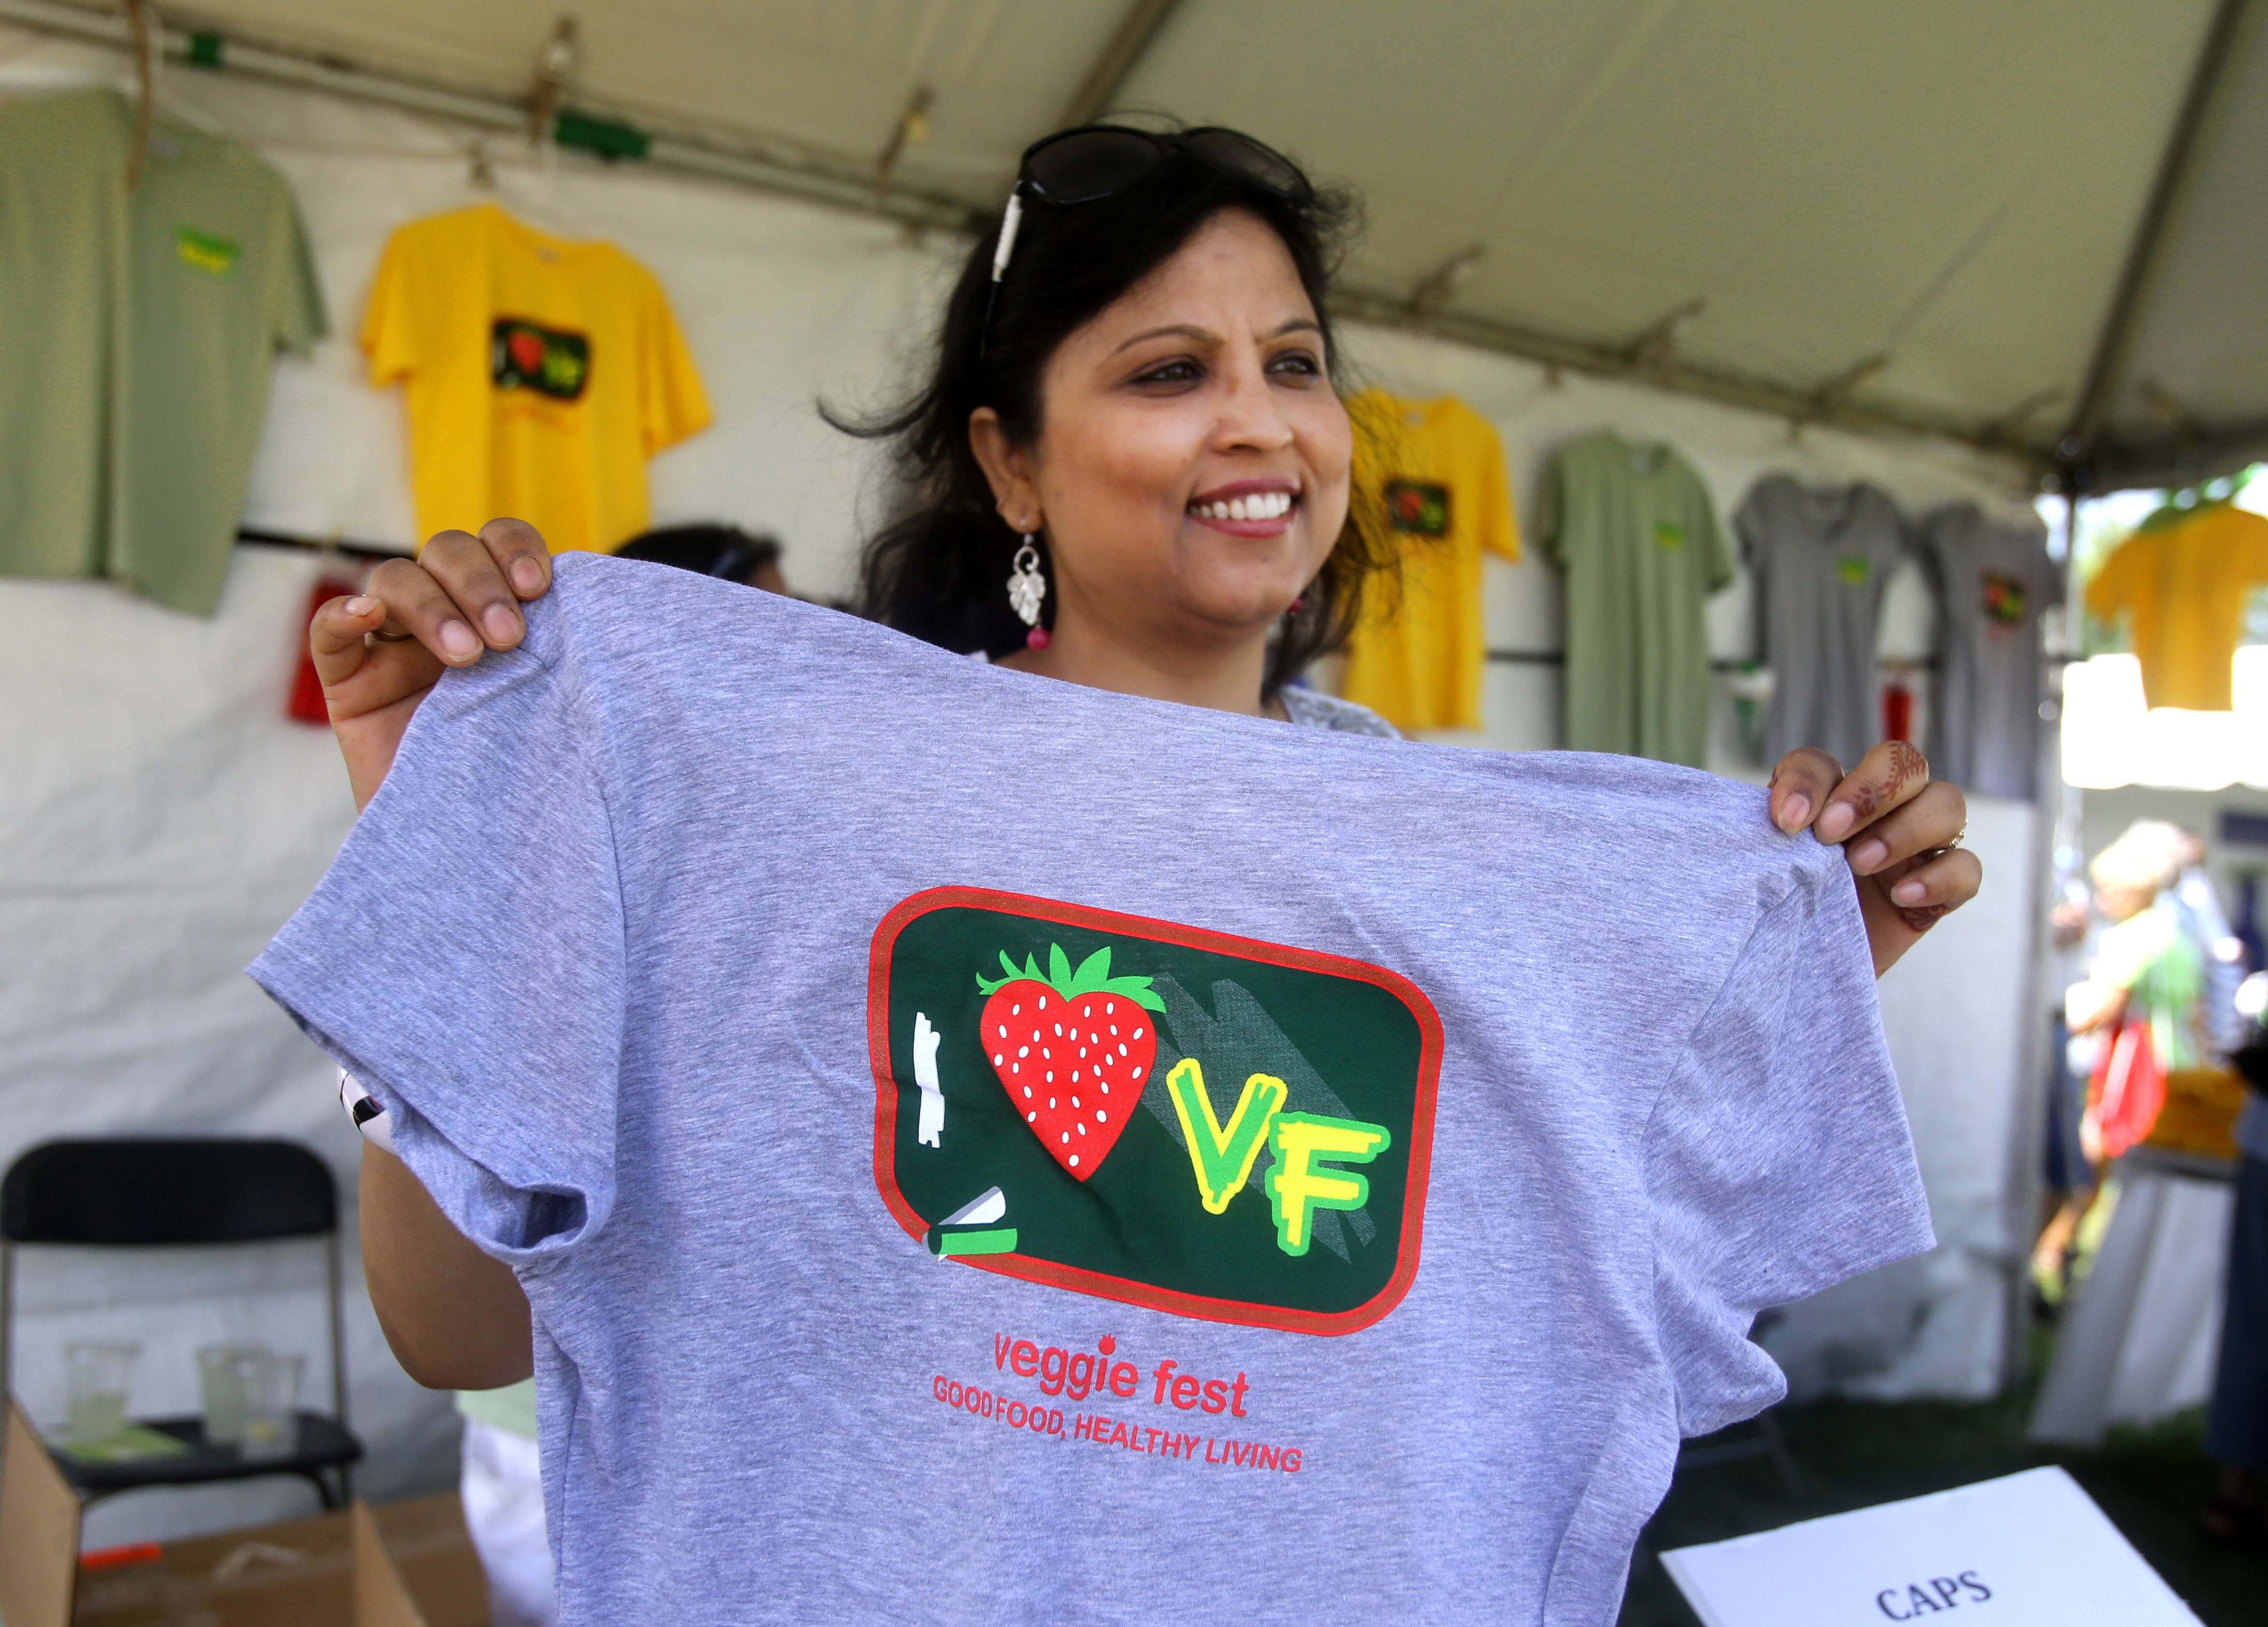 Rajendra Pandey sells T-shirts during Veggie Fest, held Saturday and Sundya on the grounds of the Science of Spirituality Meditation Center in Naperville. Pandey was one of 800 volunteers involved in implementing this ninth annual celebration.